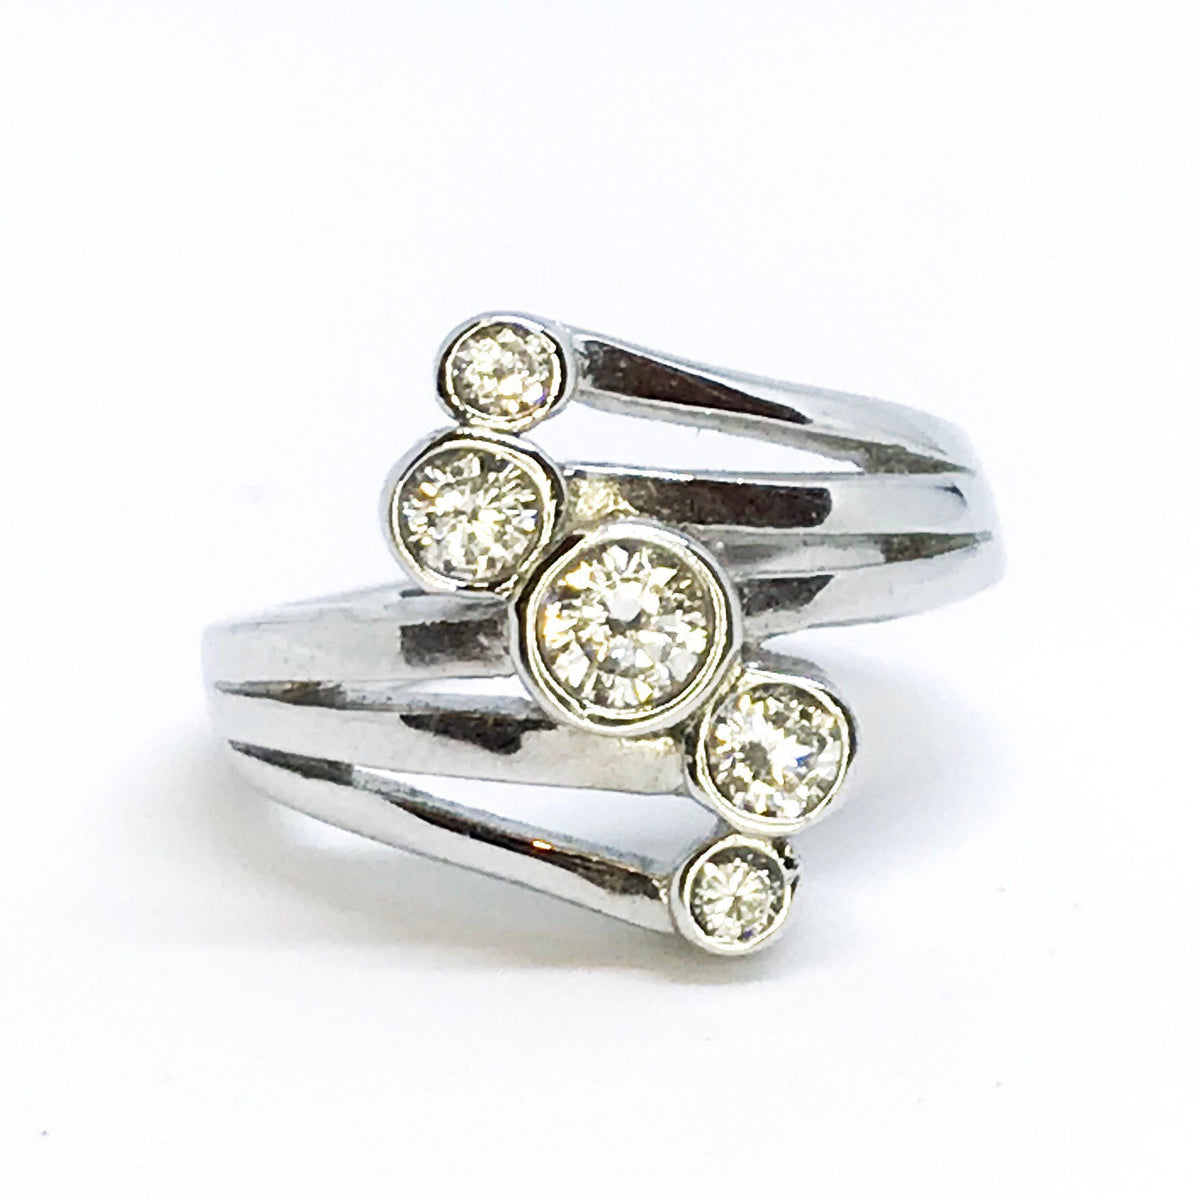 NEW 14K White Gold Layered on Sterling Silver Swirled Circle Stones Ring